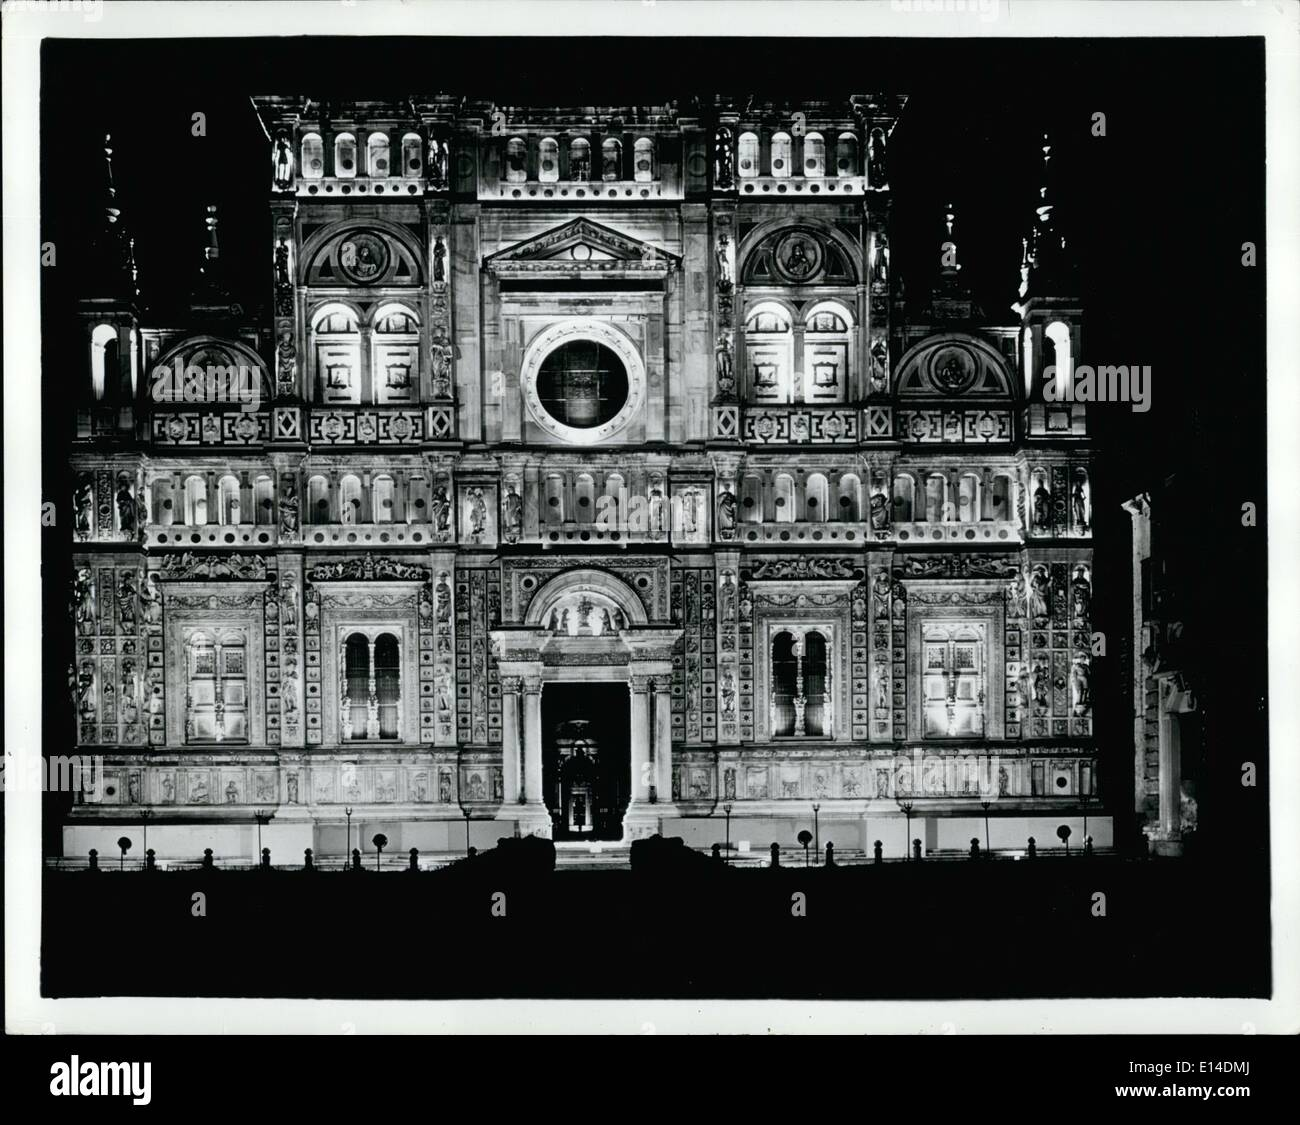 Apr. 18, 2012 - Carthusian monastery in Italy illuminated for first time in it's six century history: The Carthusian Monastery of Pavia has been illuminated for the first time in its 600 year history with carefully placed lamps individually highlighting the elaborate carvings which make the structure one of the finest examples of Renaiissance architecture in existence. Shown (above) is the facade of the charterhouse - Stock Image